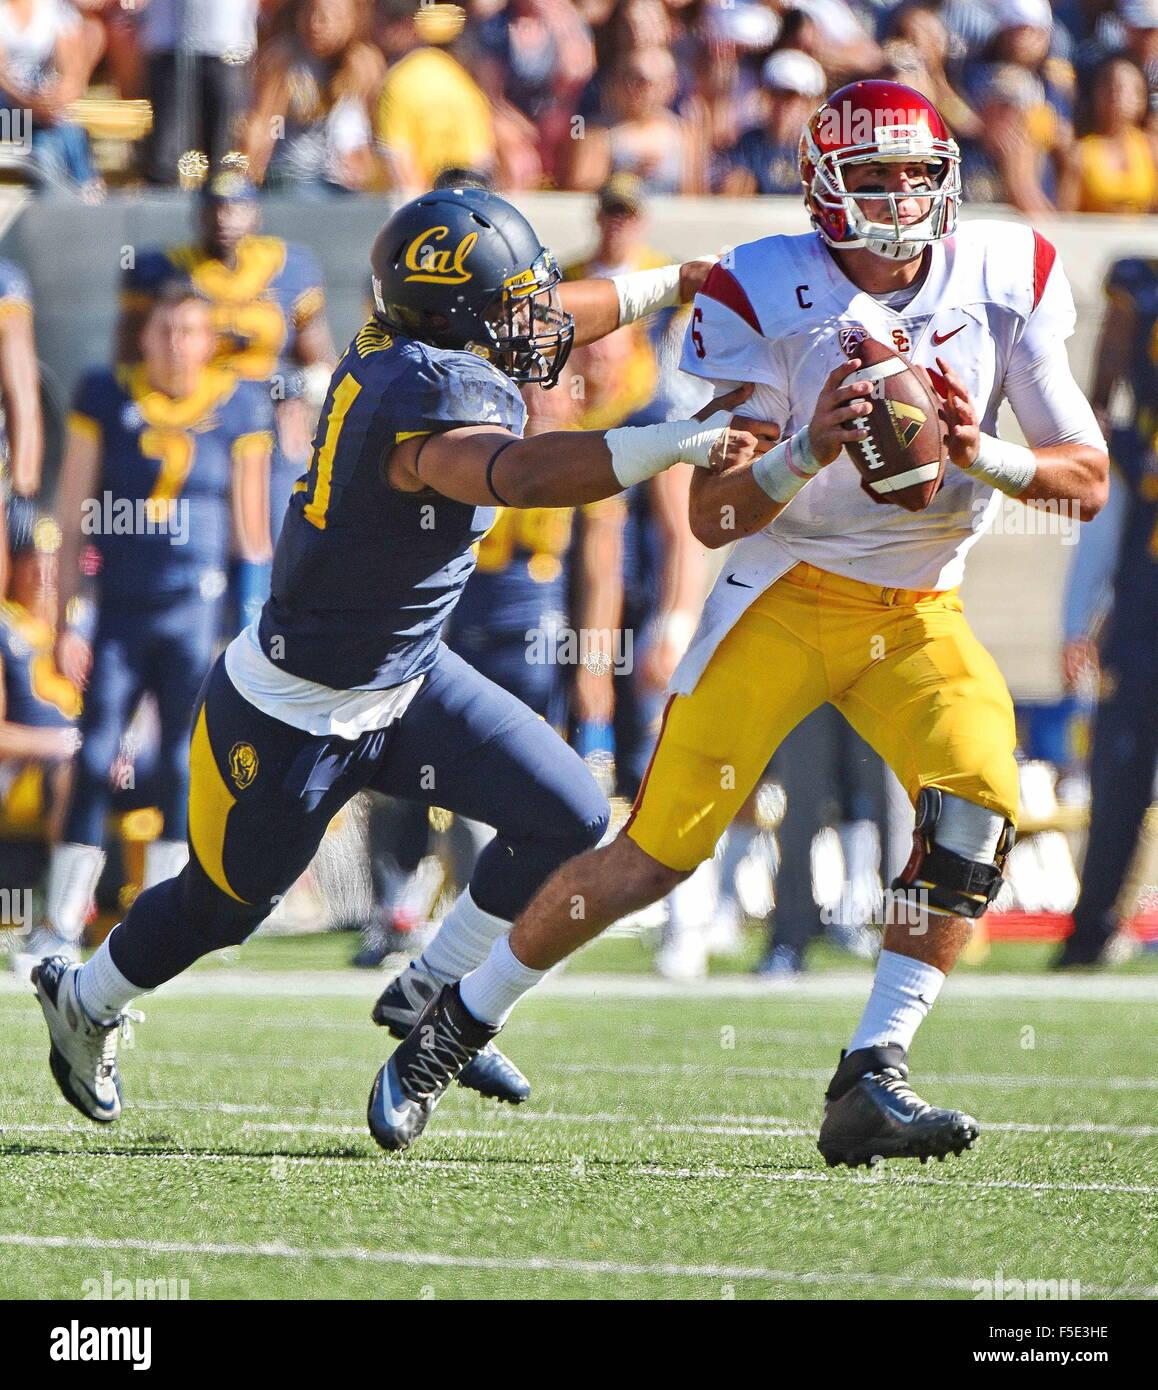 Berkley, CA. 31st Oct, 2015. Cody Kessler of the USC Trojans in action during a 27-21 victory over the Cal Bears - Stock Image